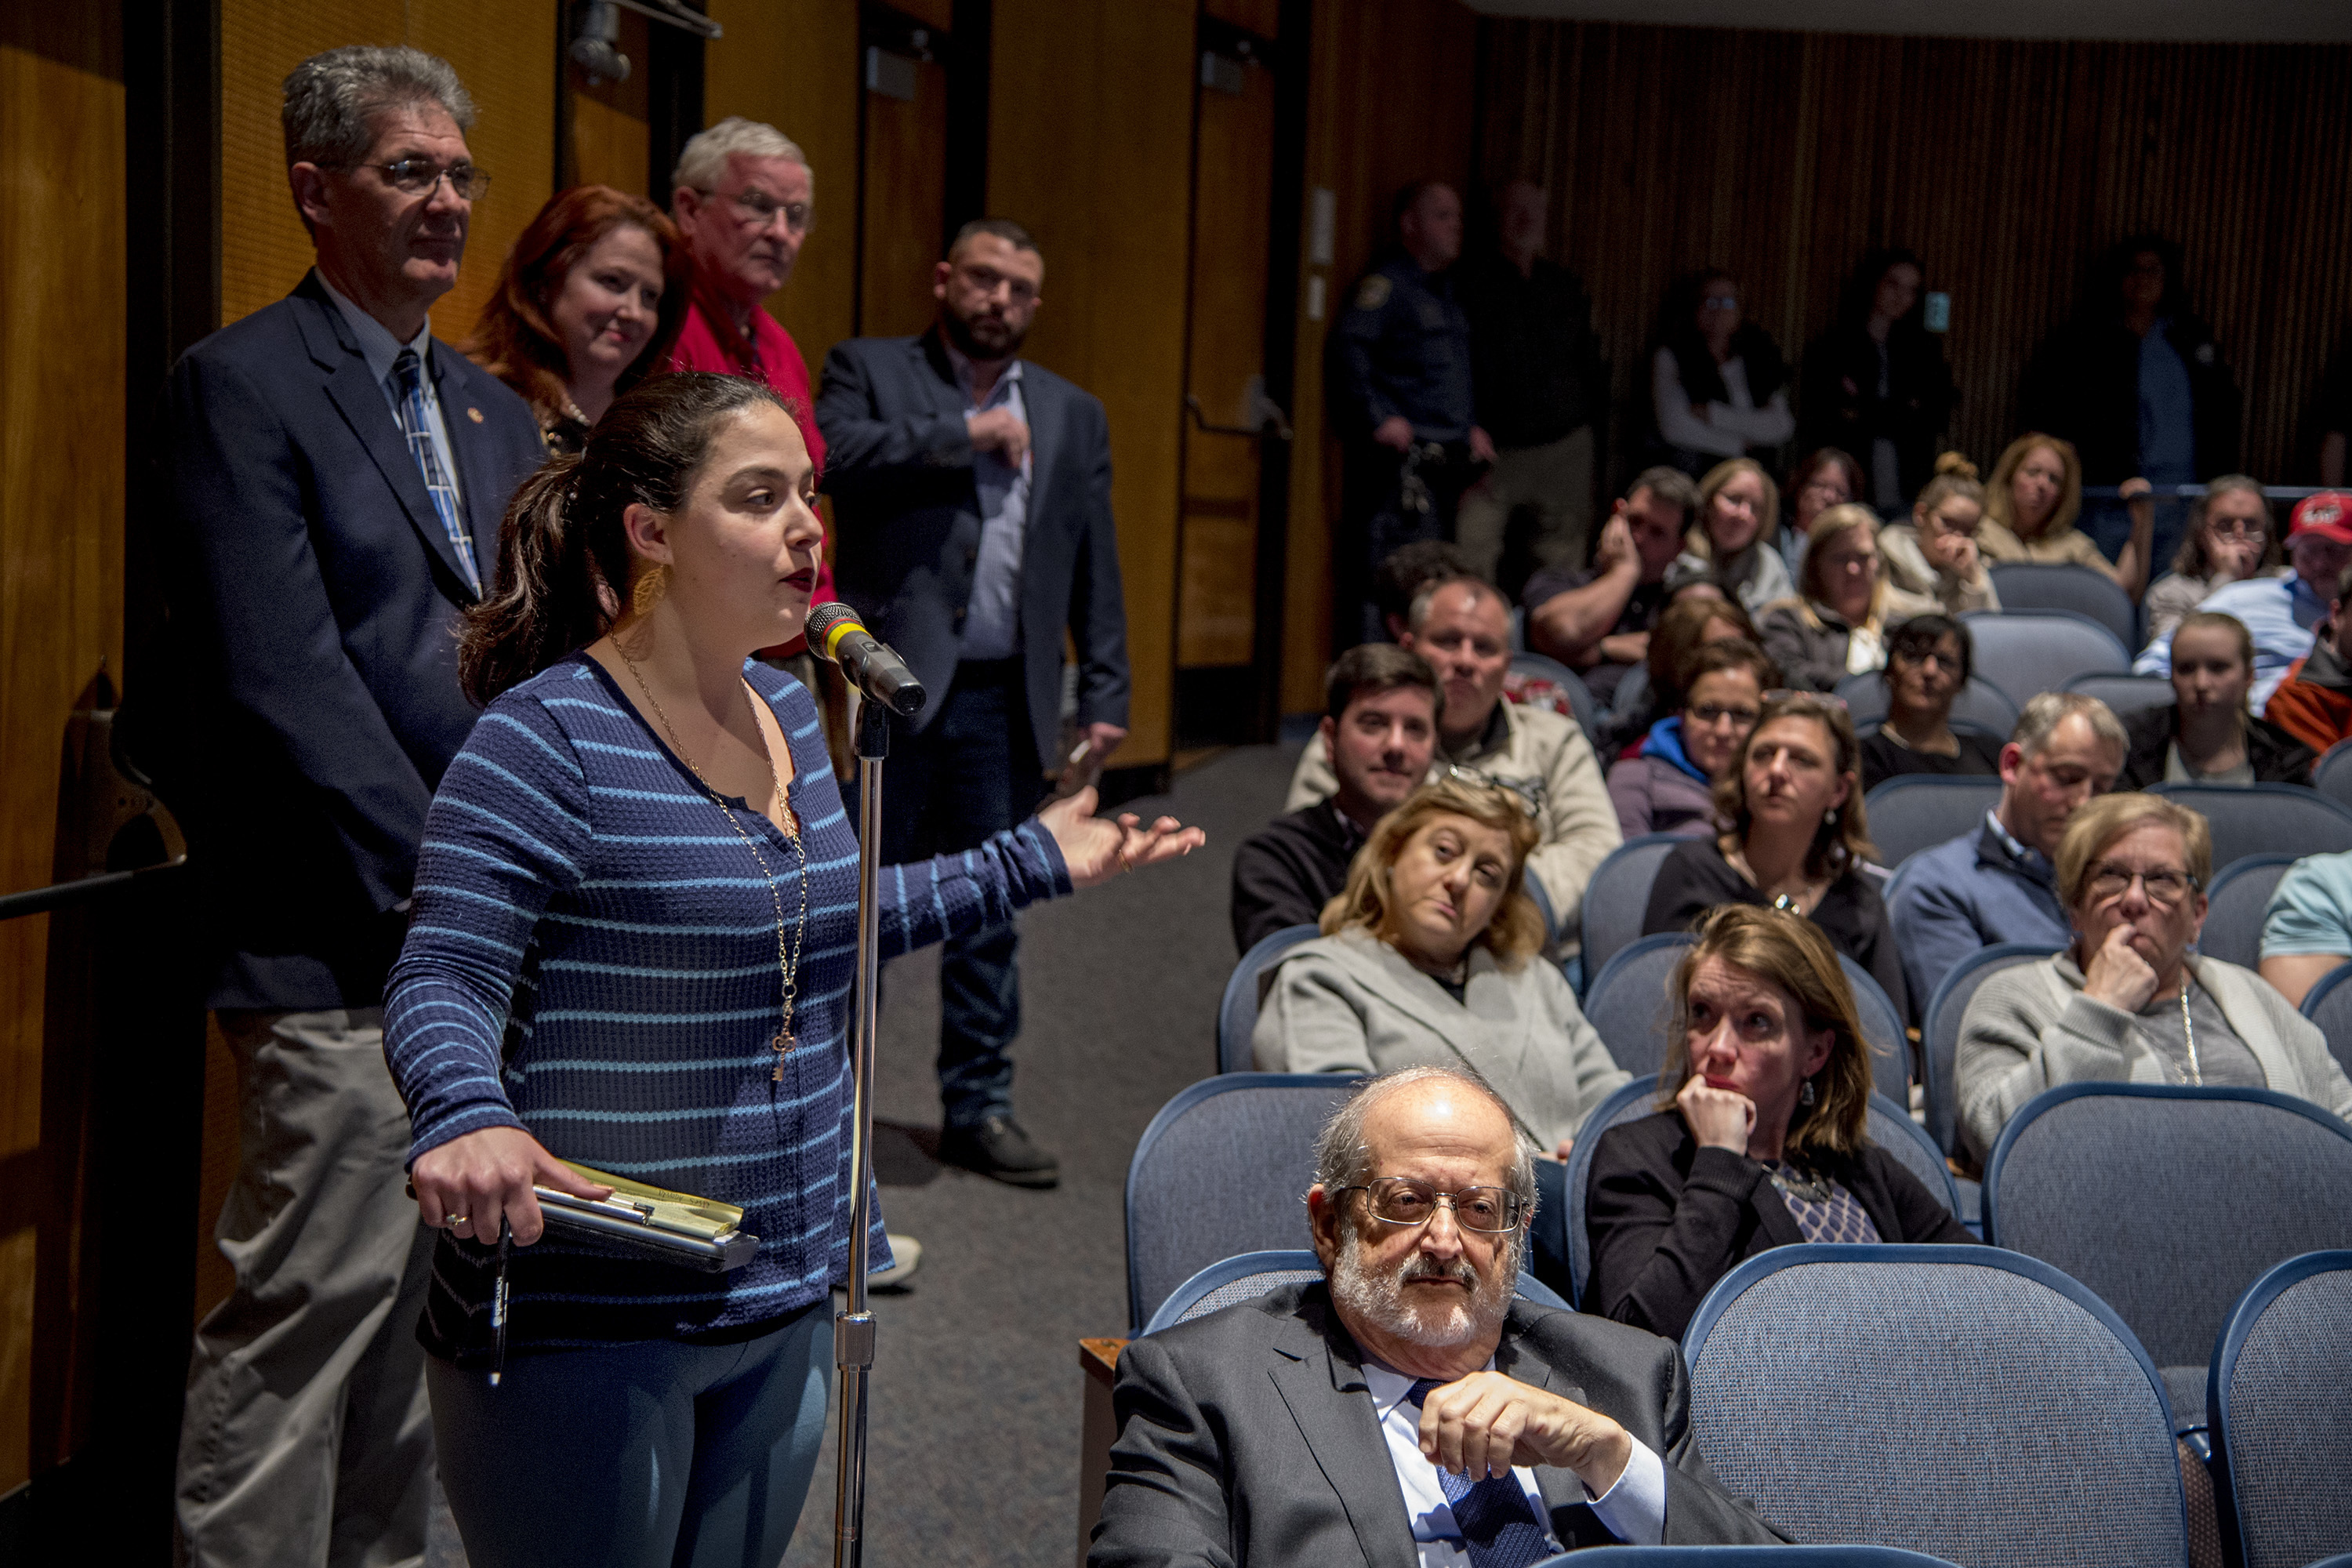 Abington resident Philomena Delancy addresses the Abington School Board during the public comment part of their meeting April 10, 2018 with residents questioning the $25 million donation from Wall Street billionaire and alum Stephen Schwarzman. She said she could no longer trust the board and superintendent anymore.